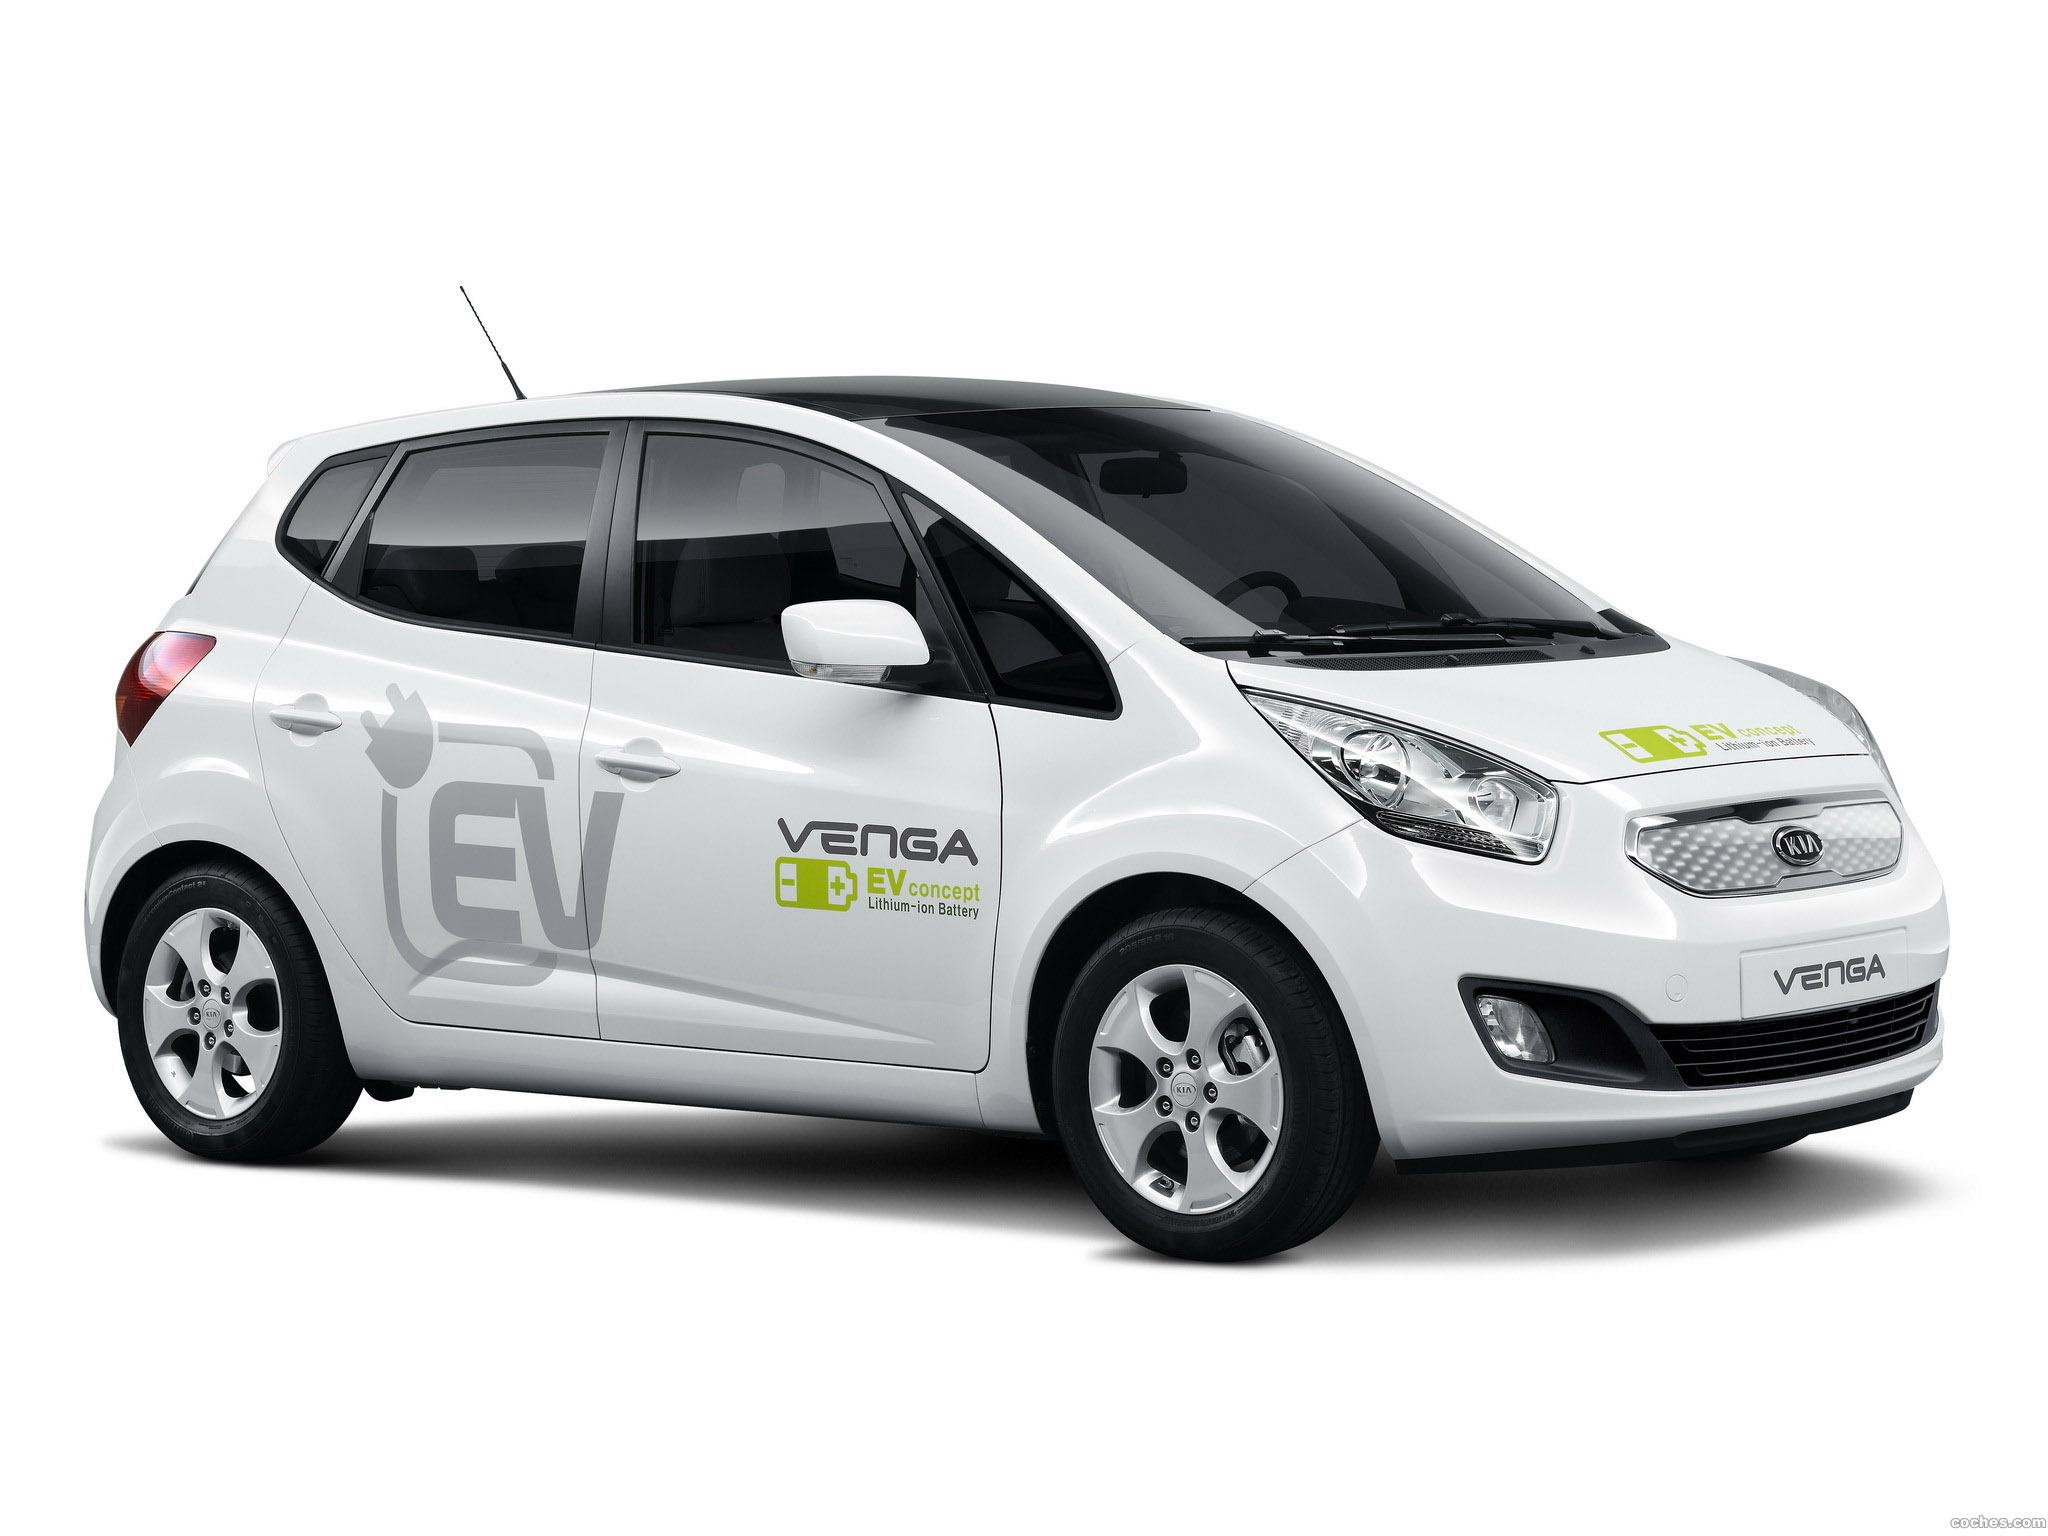 Foto 0 de Kia Venga Plug-In Electric Concept 2010